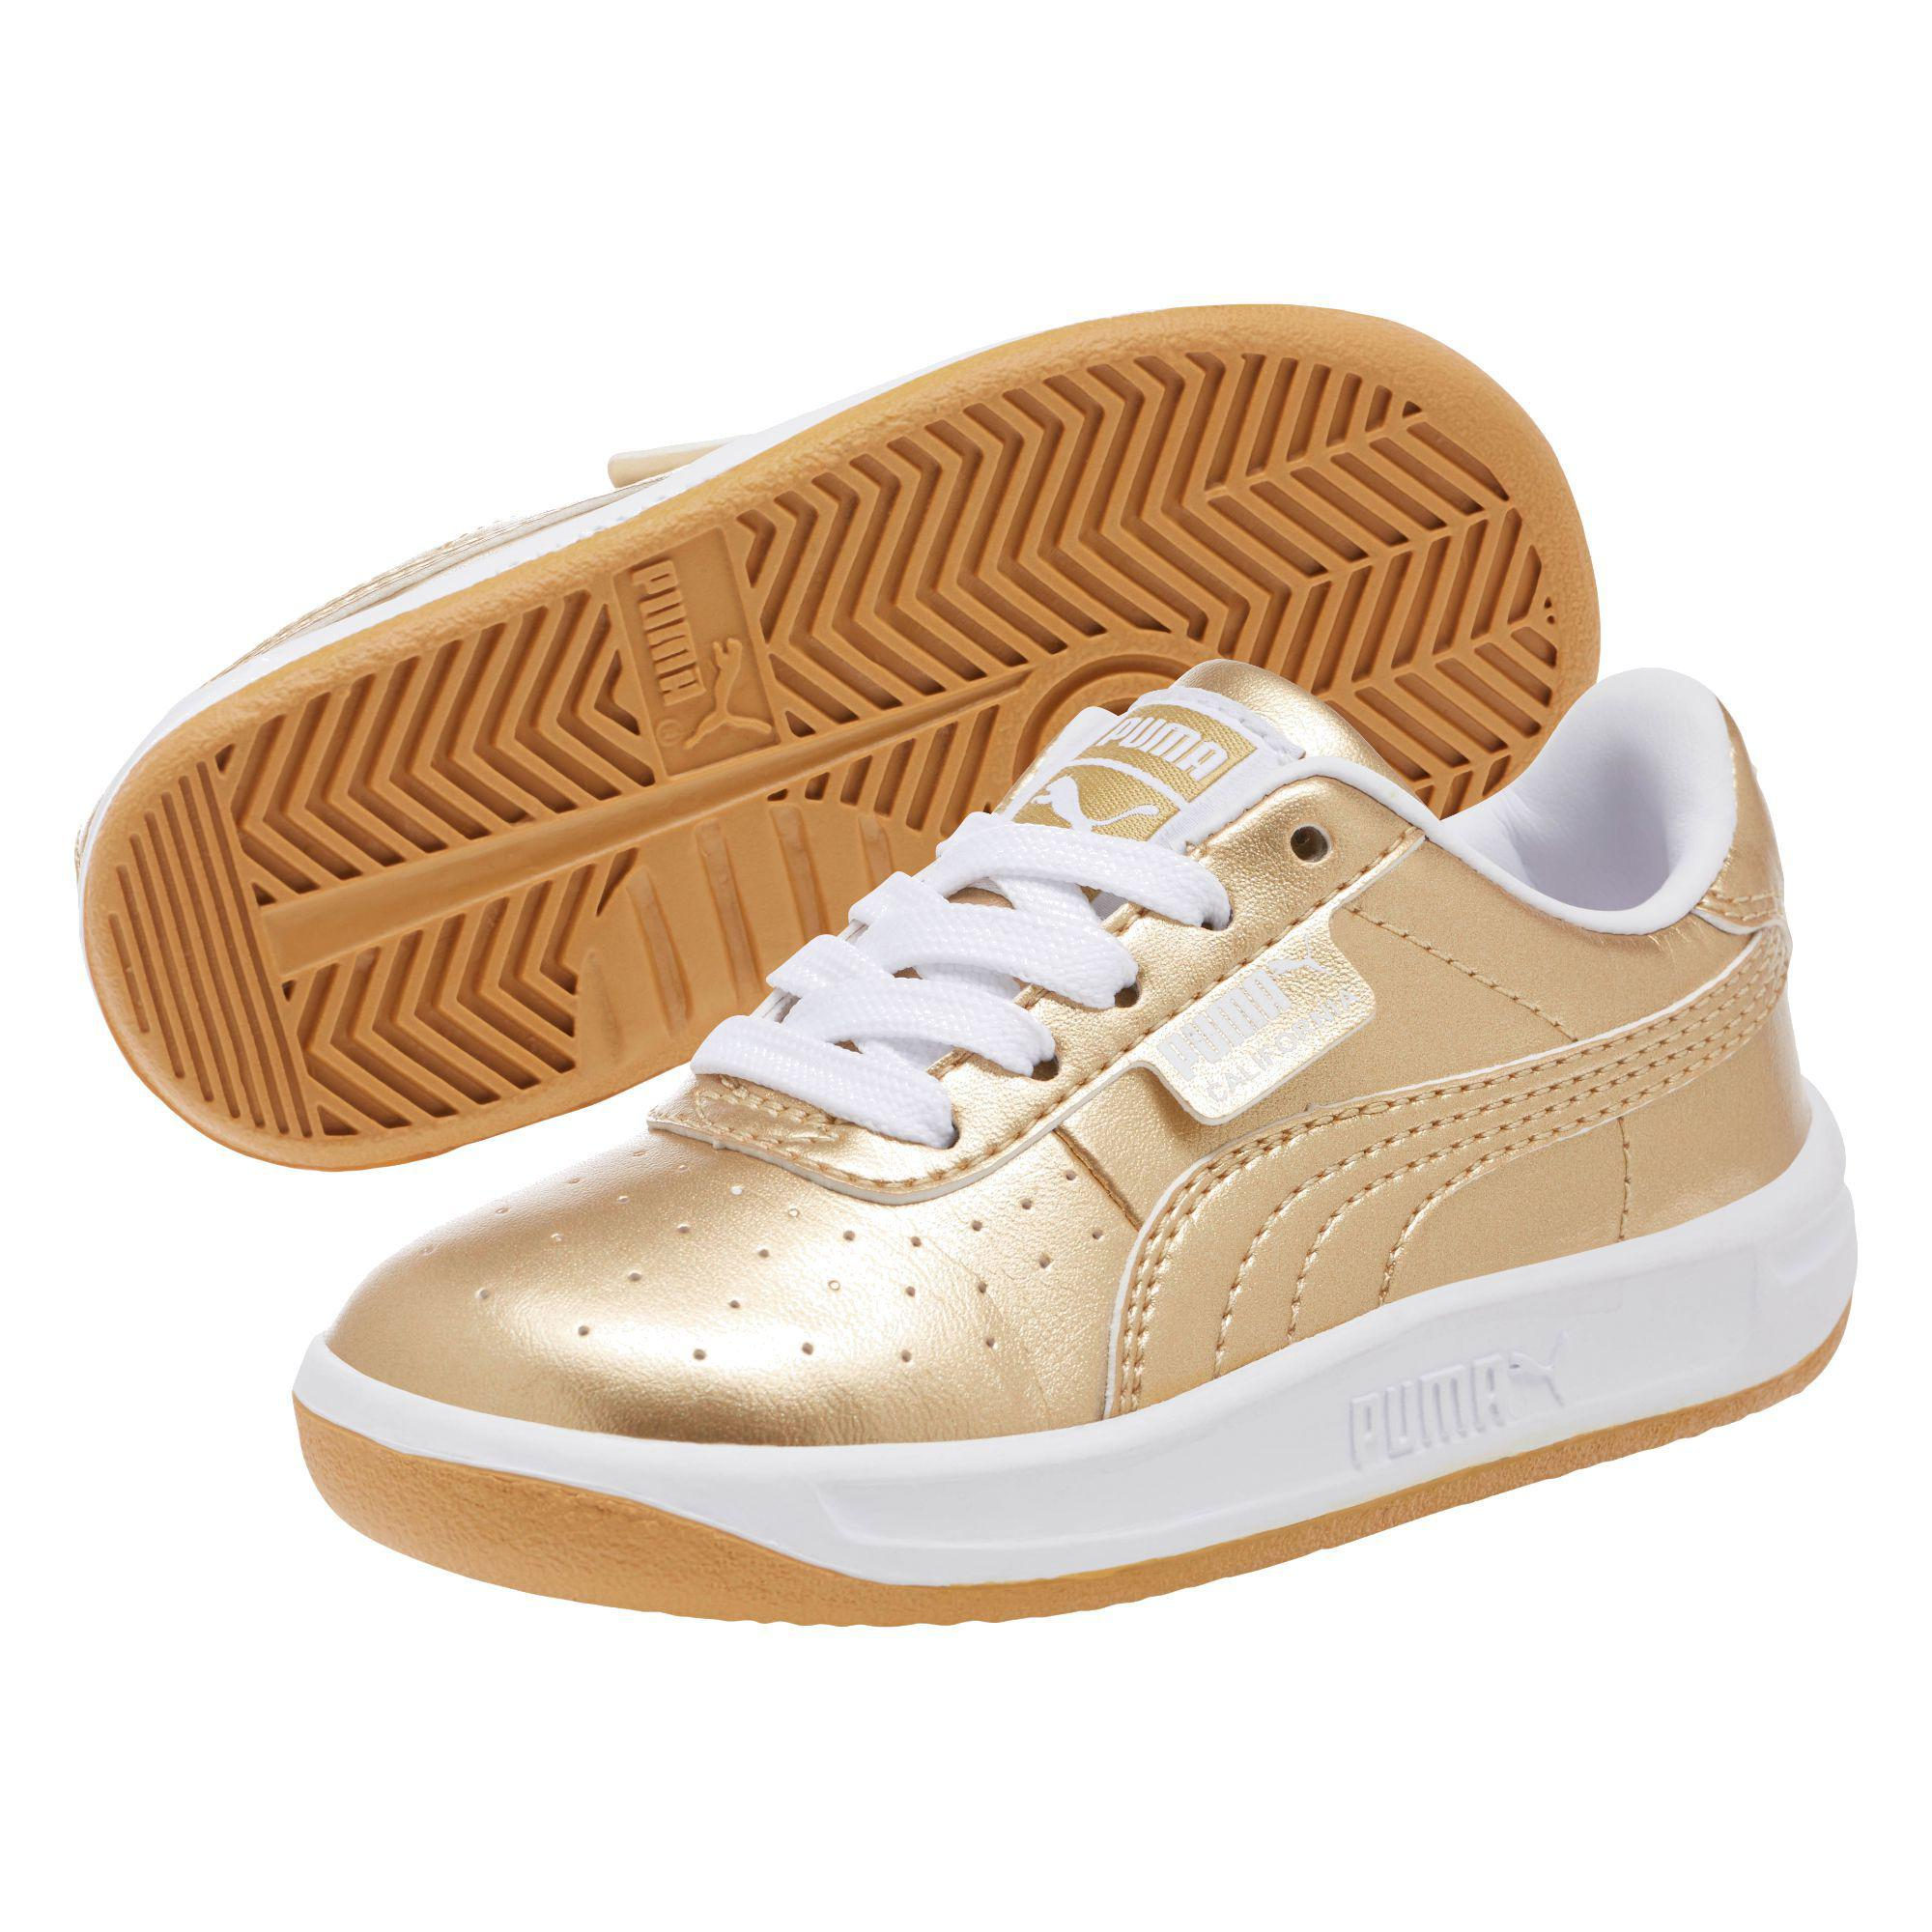 4fb837d4a0a65a Lyst - PUMA California Metallic Infant Sneakers in Metallic